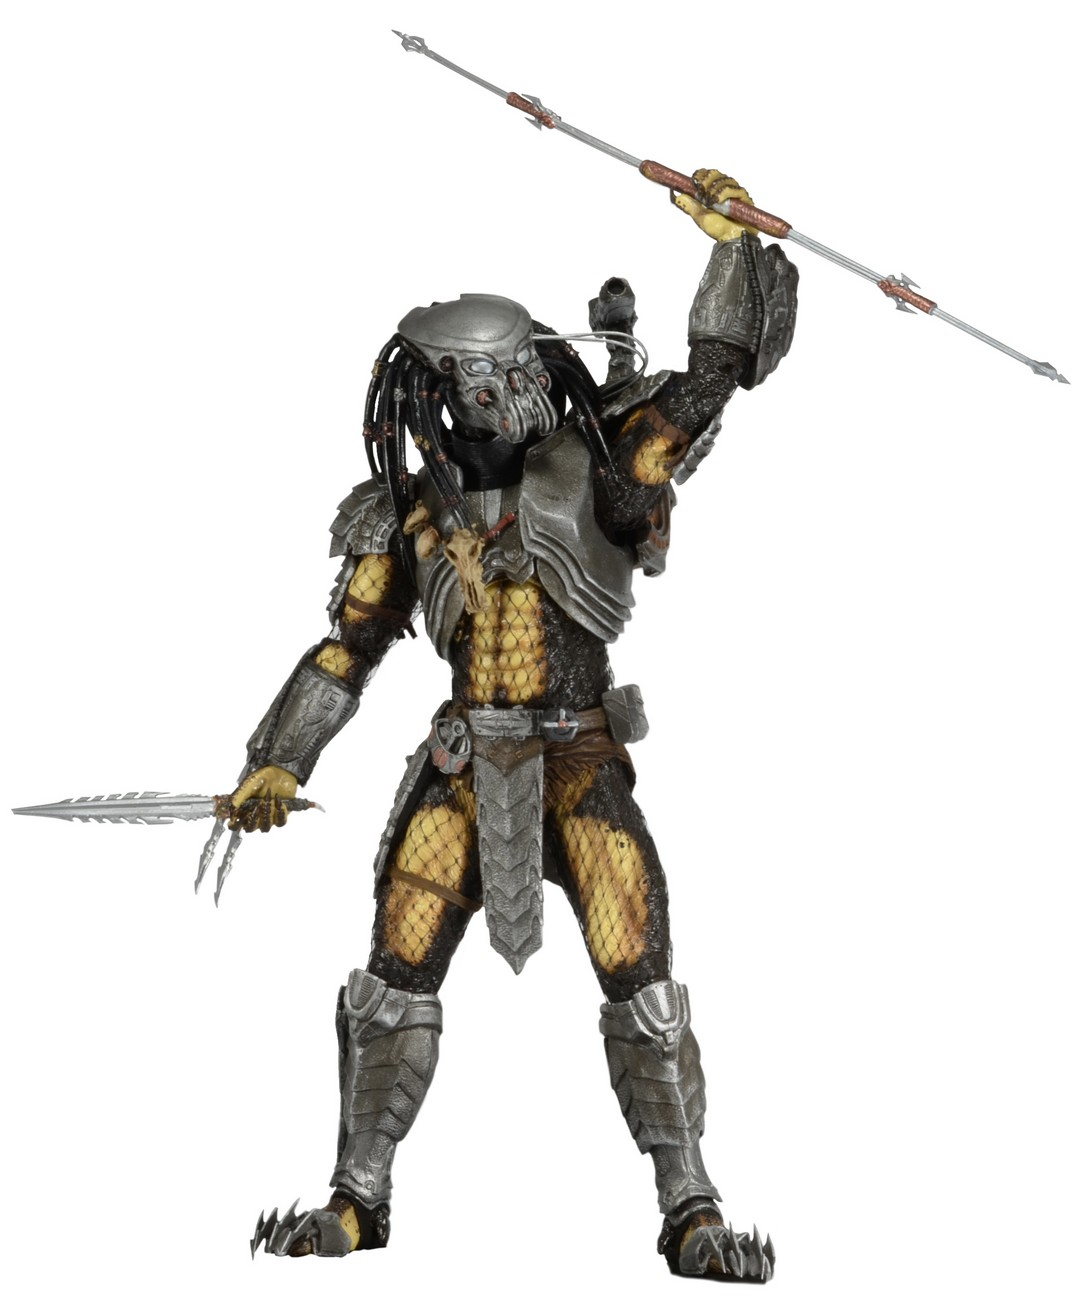 Neca Predators Series 14 Important News About The From En Ji By Palomino Luigi Backpack Blue Avp Alien Vs Predator Kam Veitch